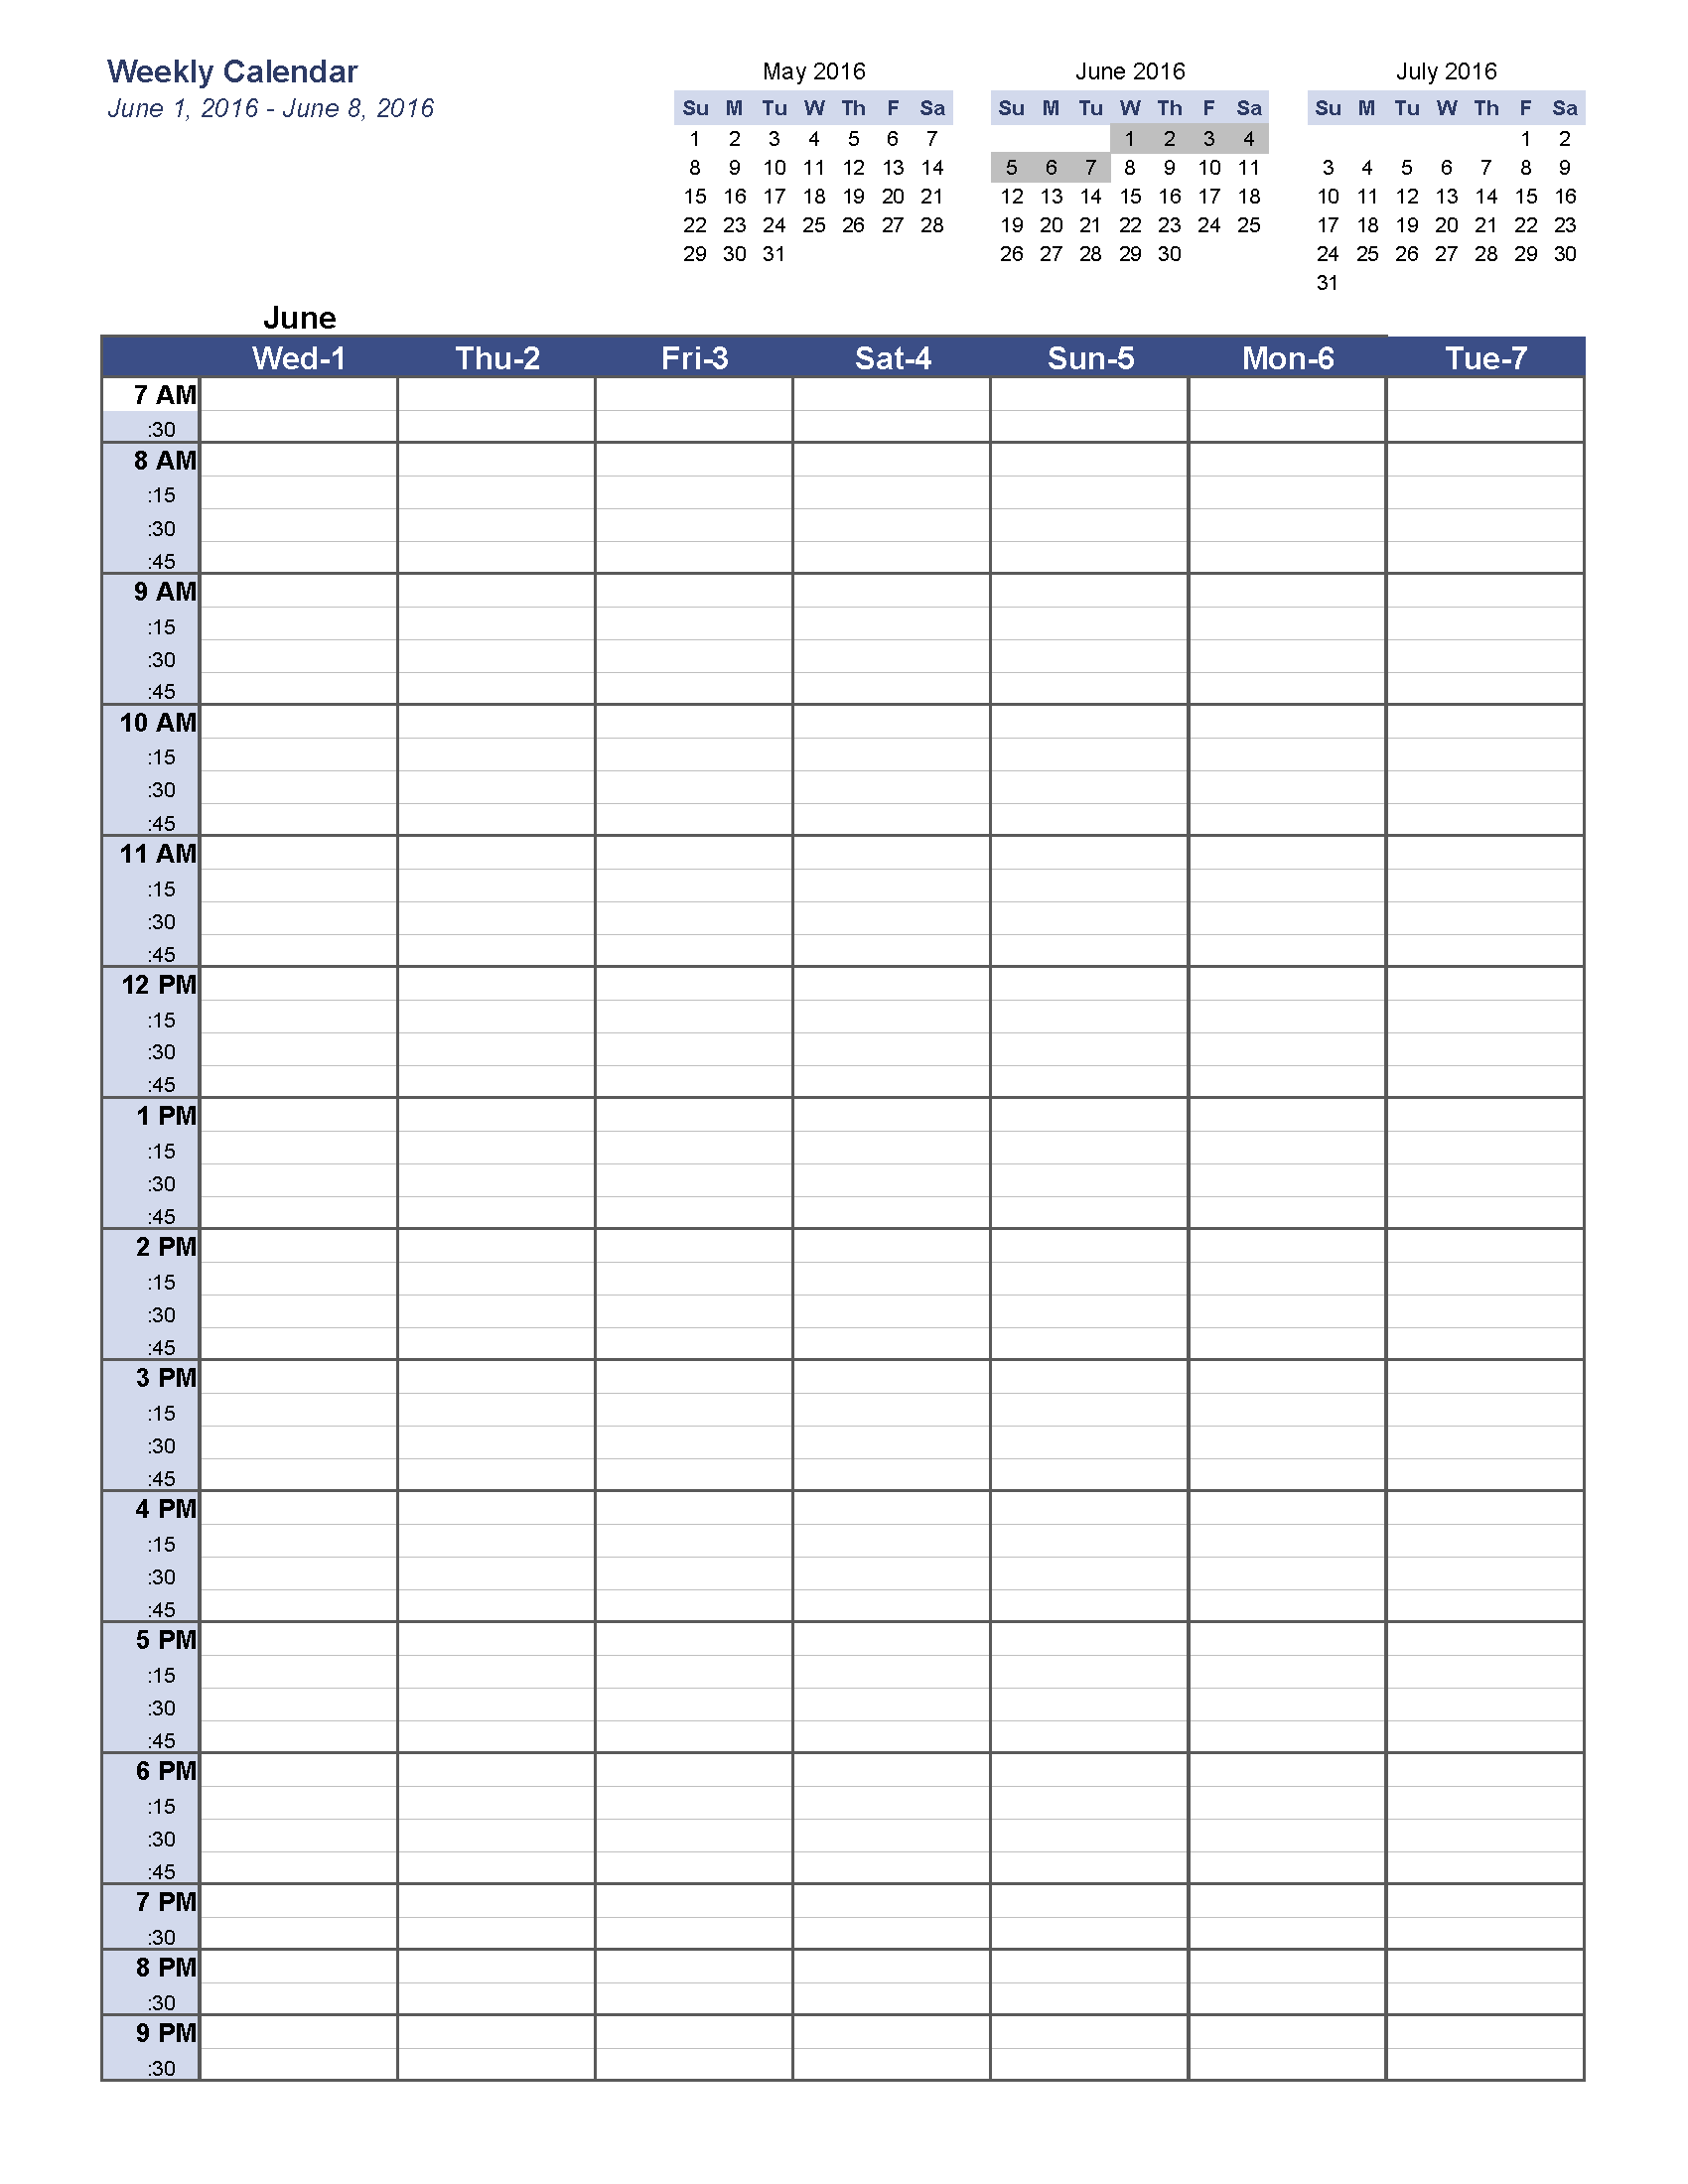 Weekly Calendar Template Image By Stuff On Time Management